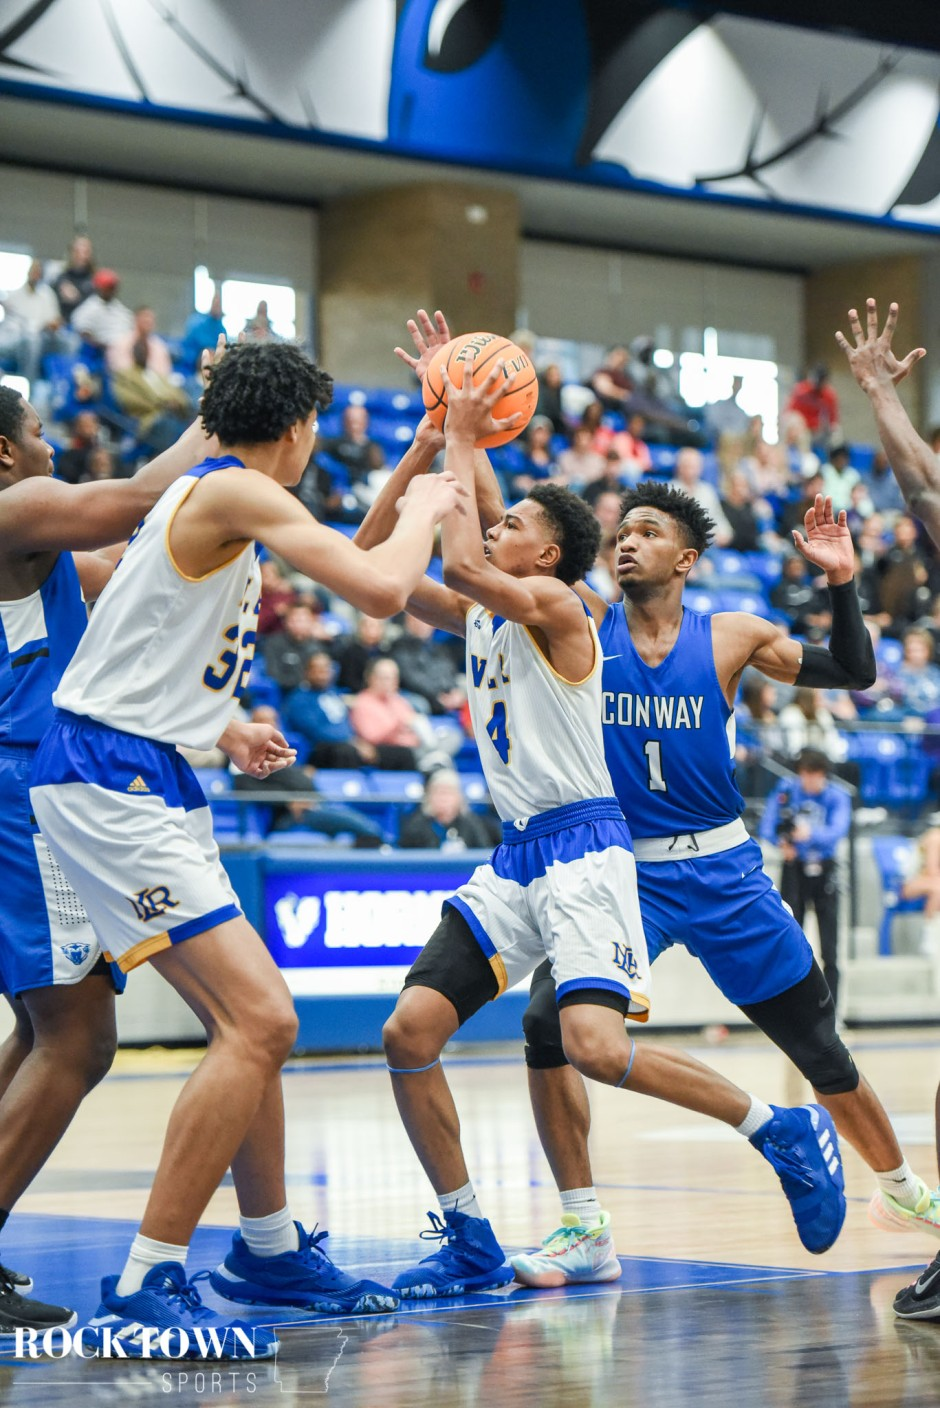 NLR_conway_bball_2020(i)-30